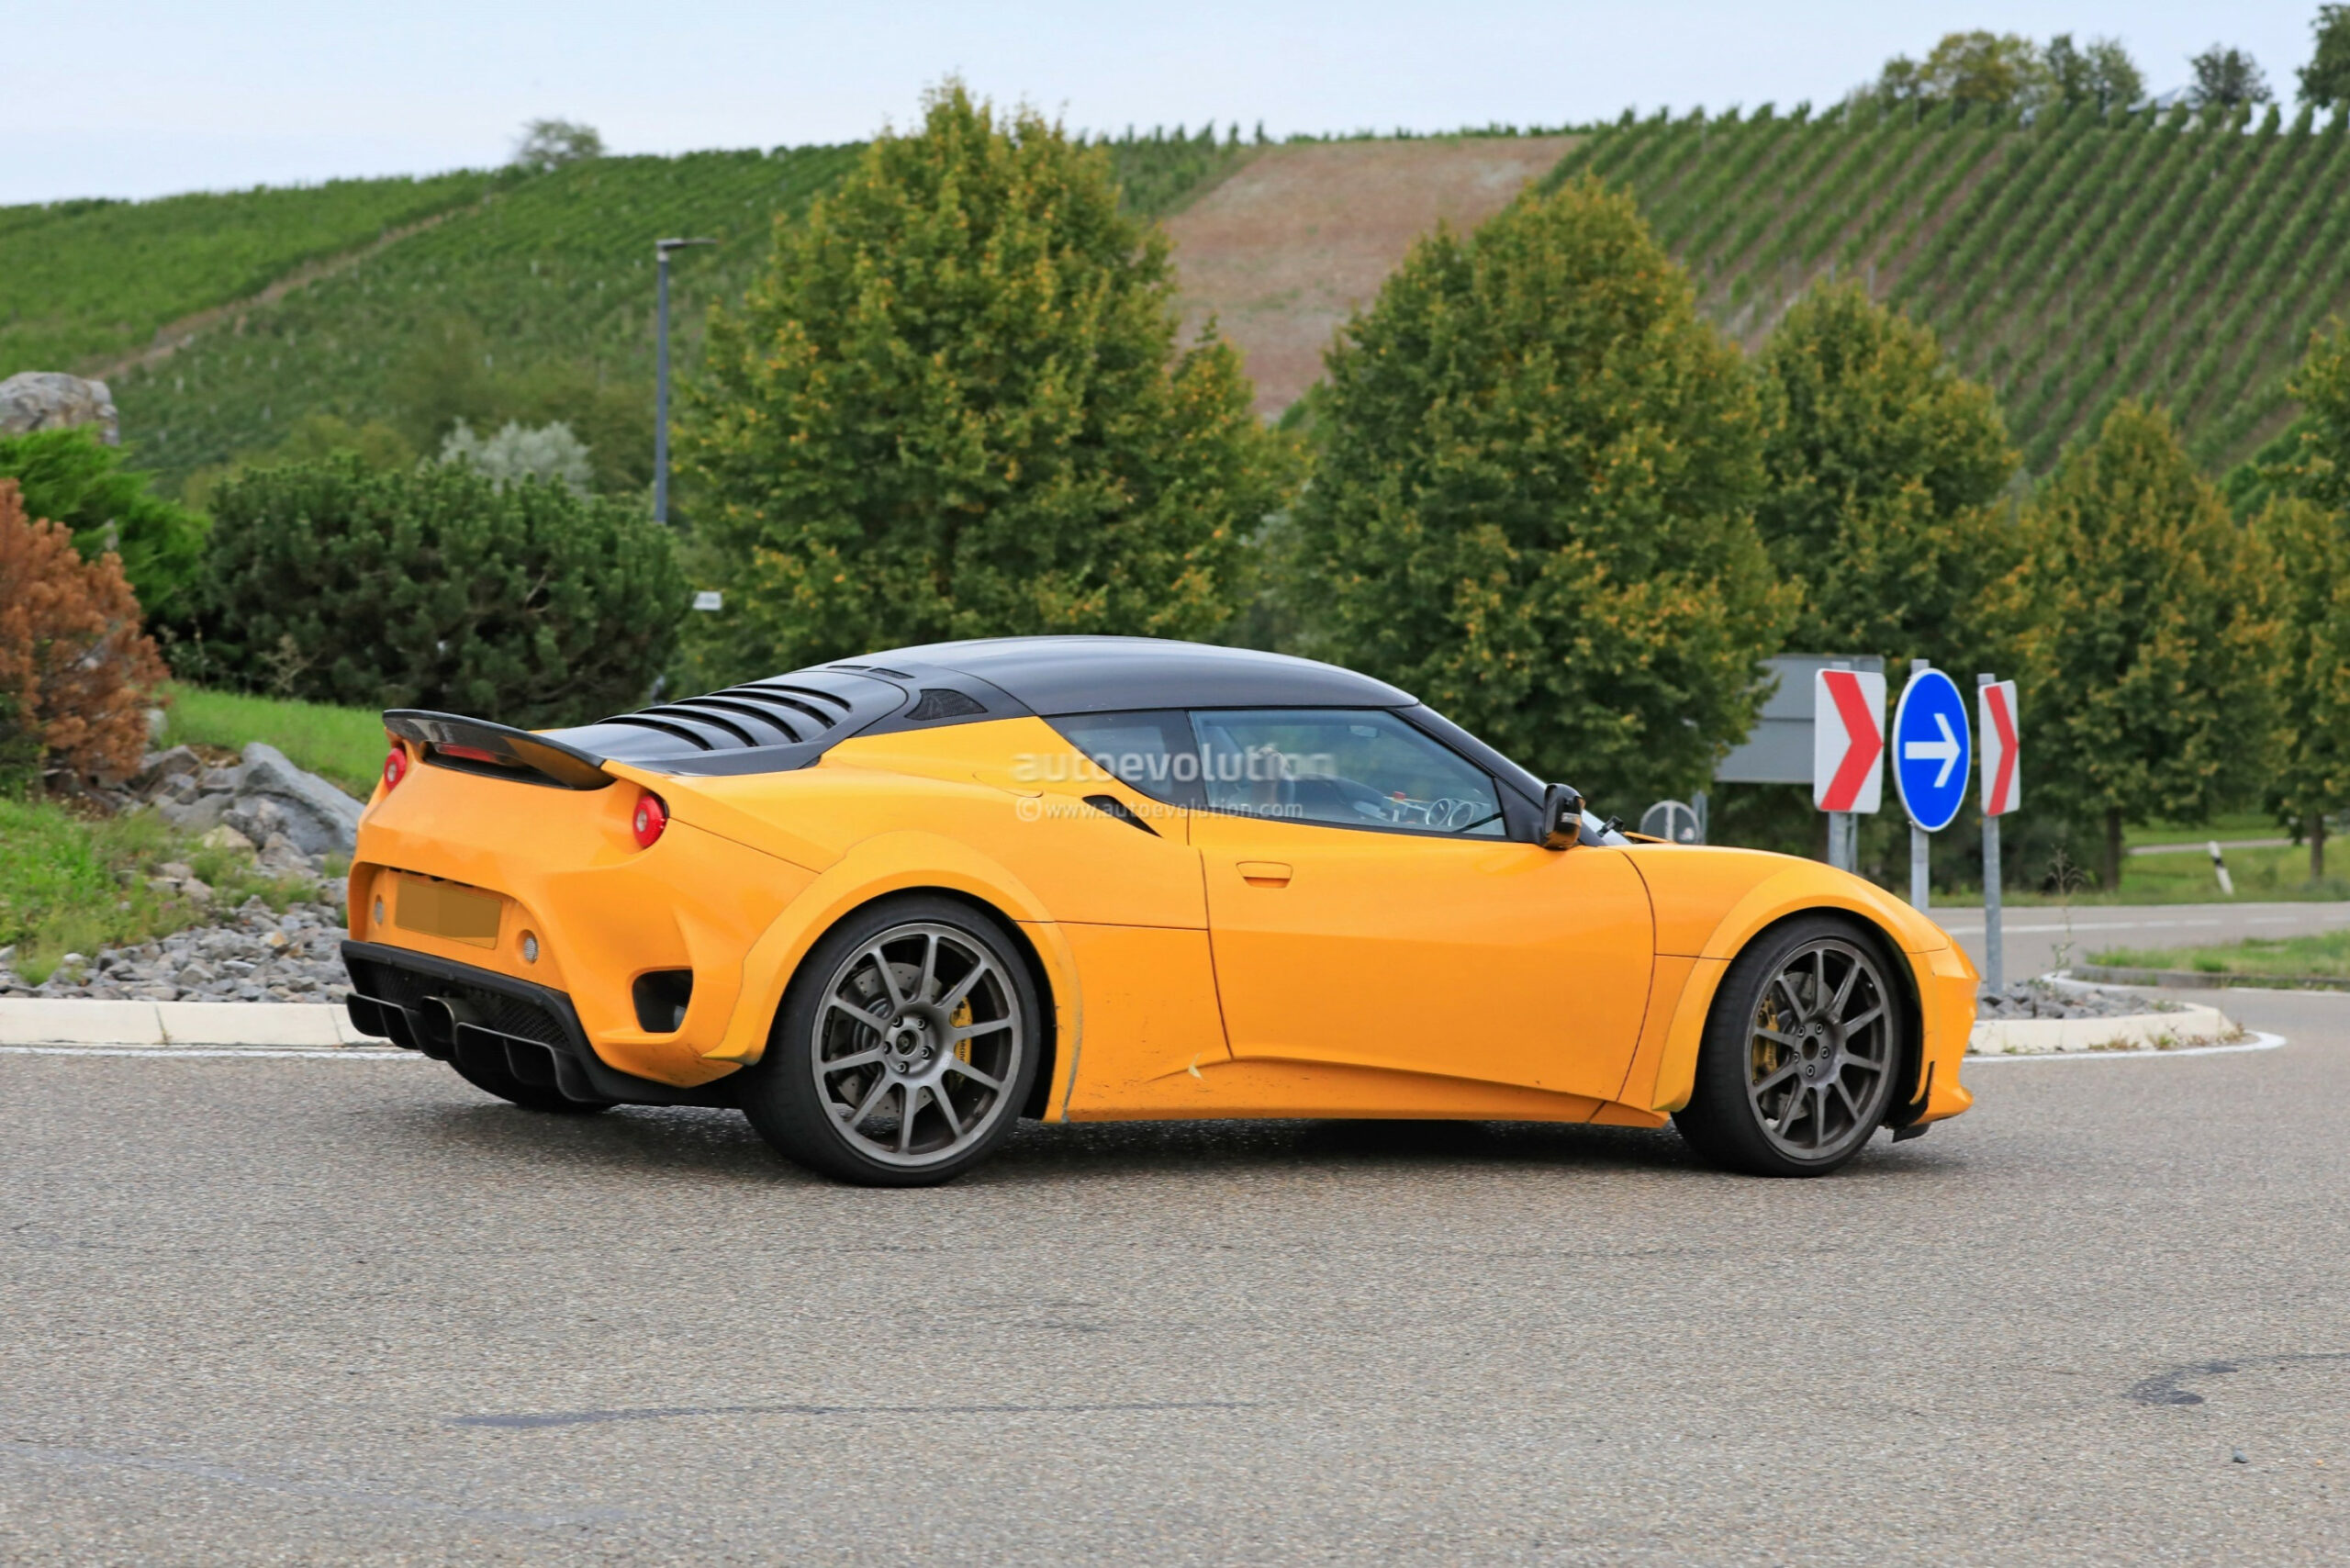 New Model and Performance 2022 The Lotus Evora